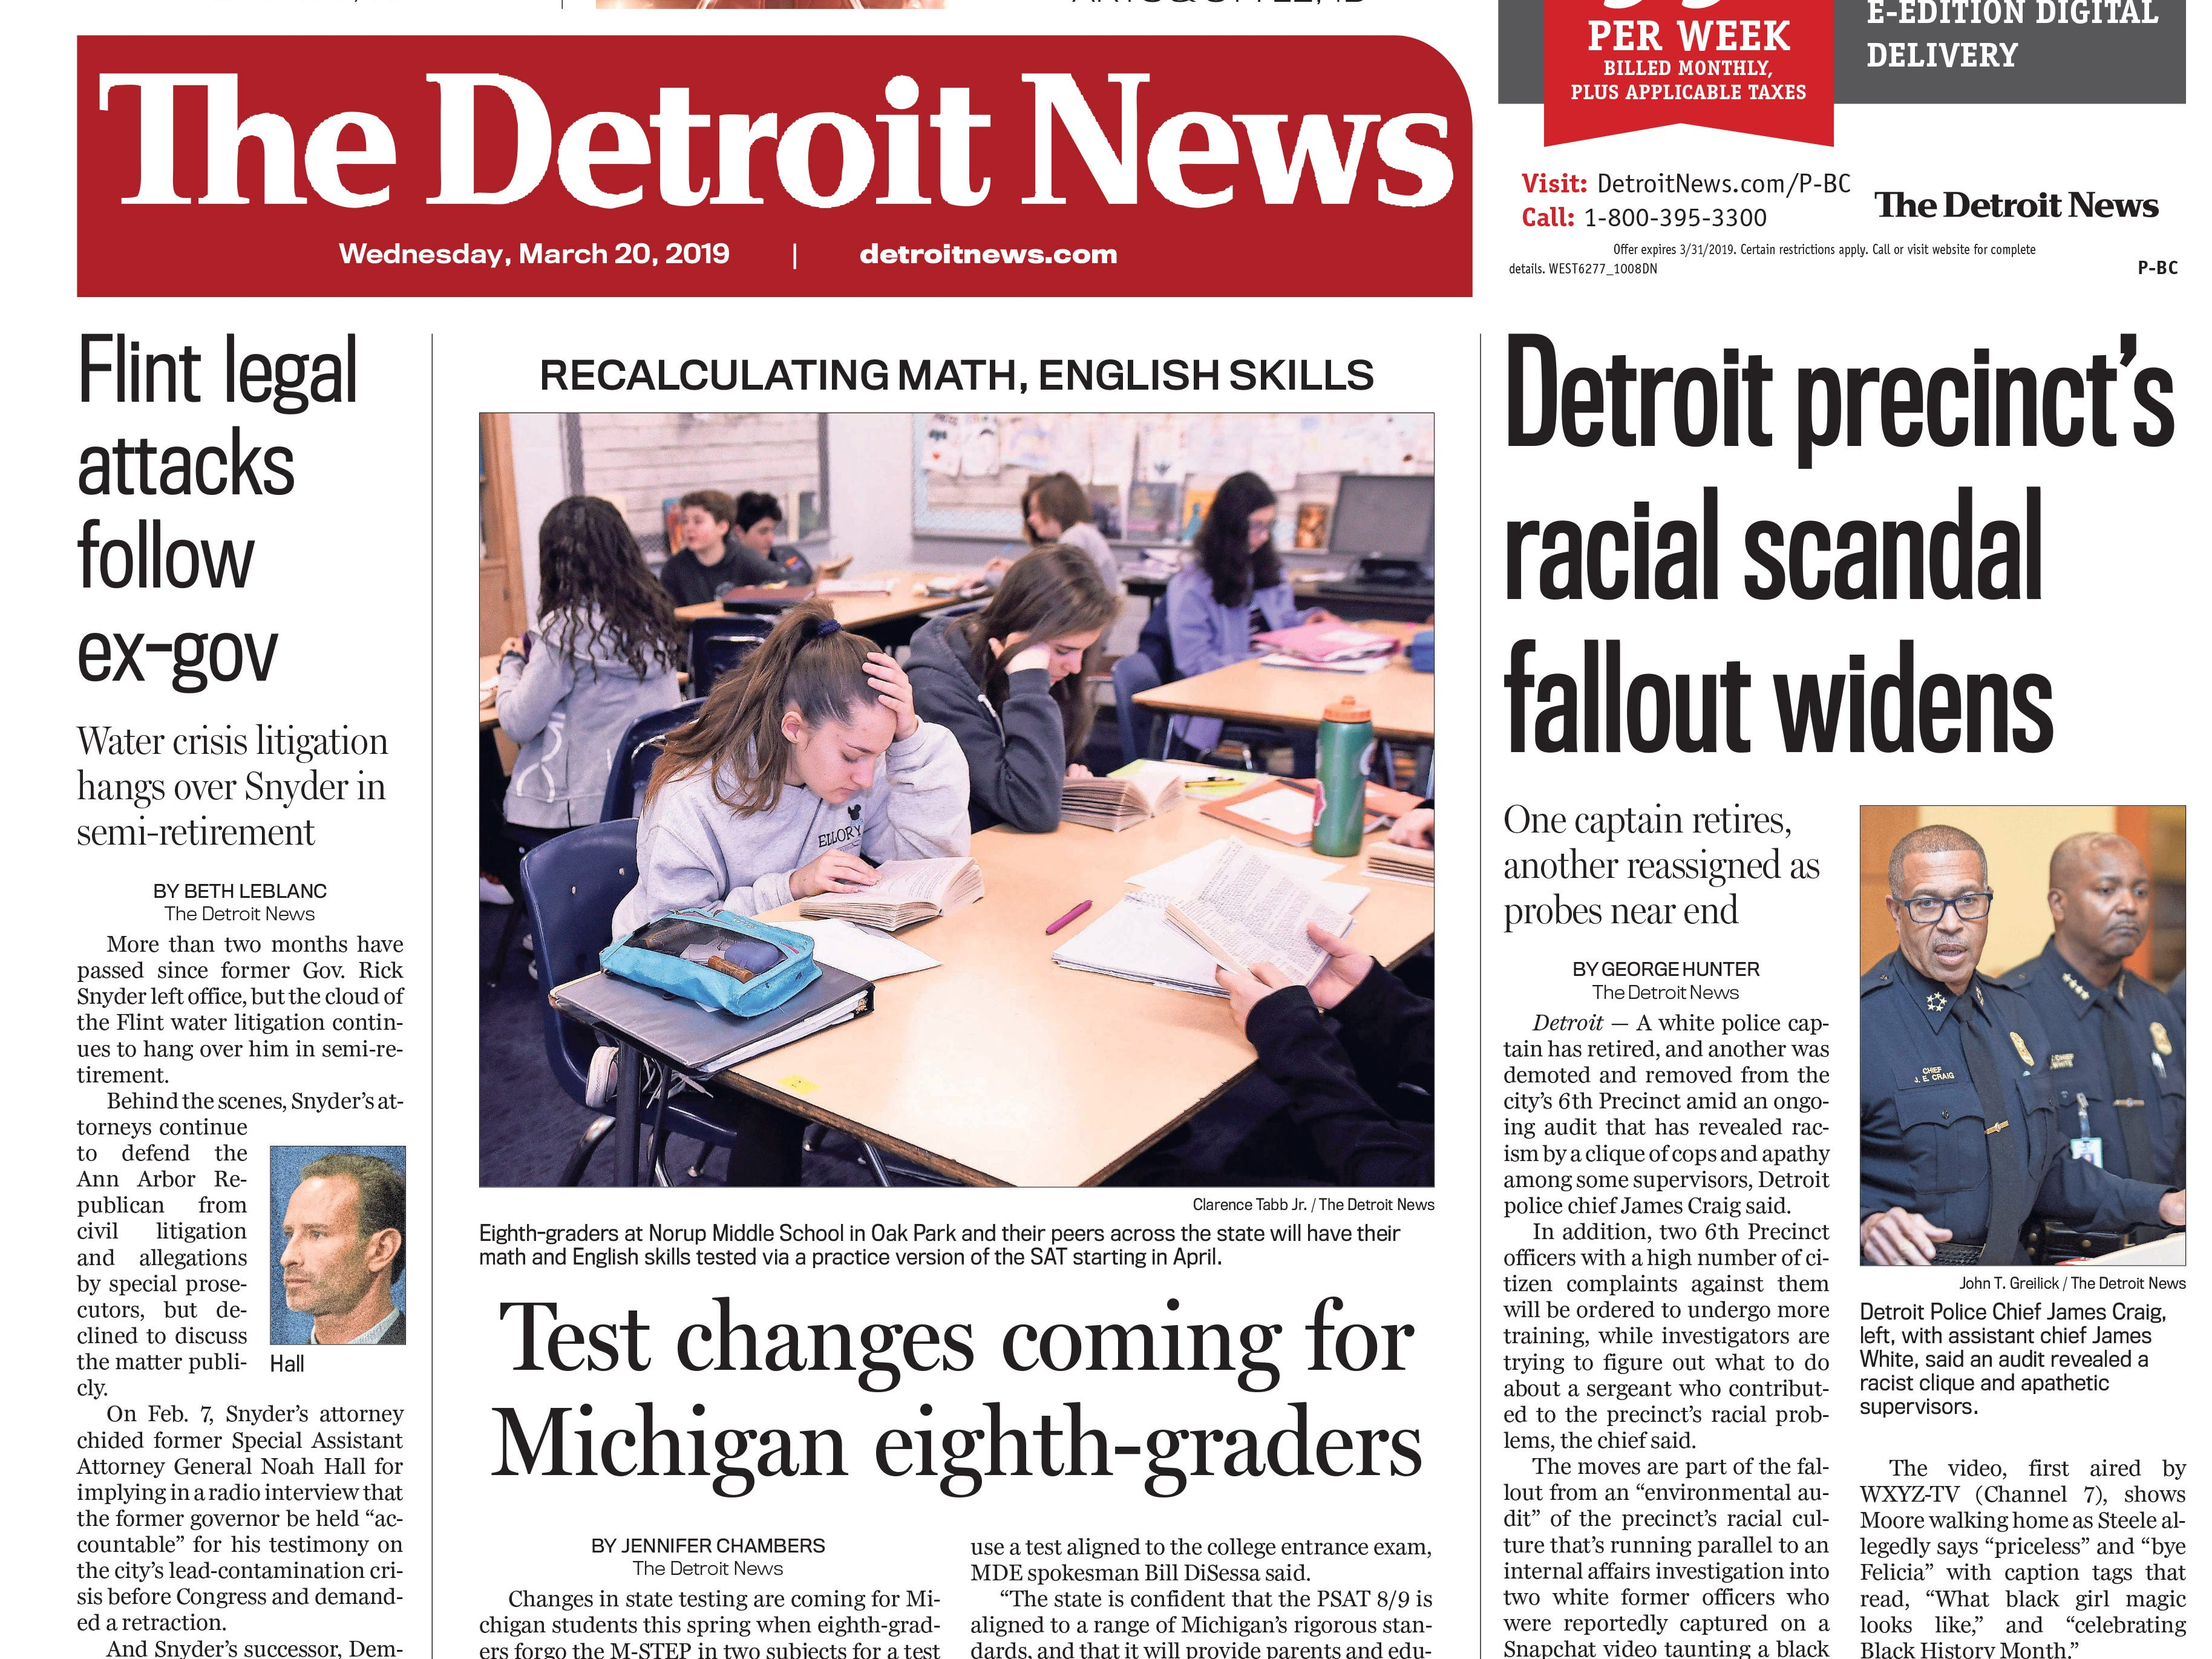 The front page of the Detroit News on Wednesday, March 20, 2019.